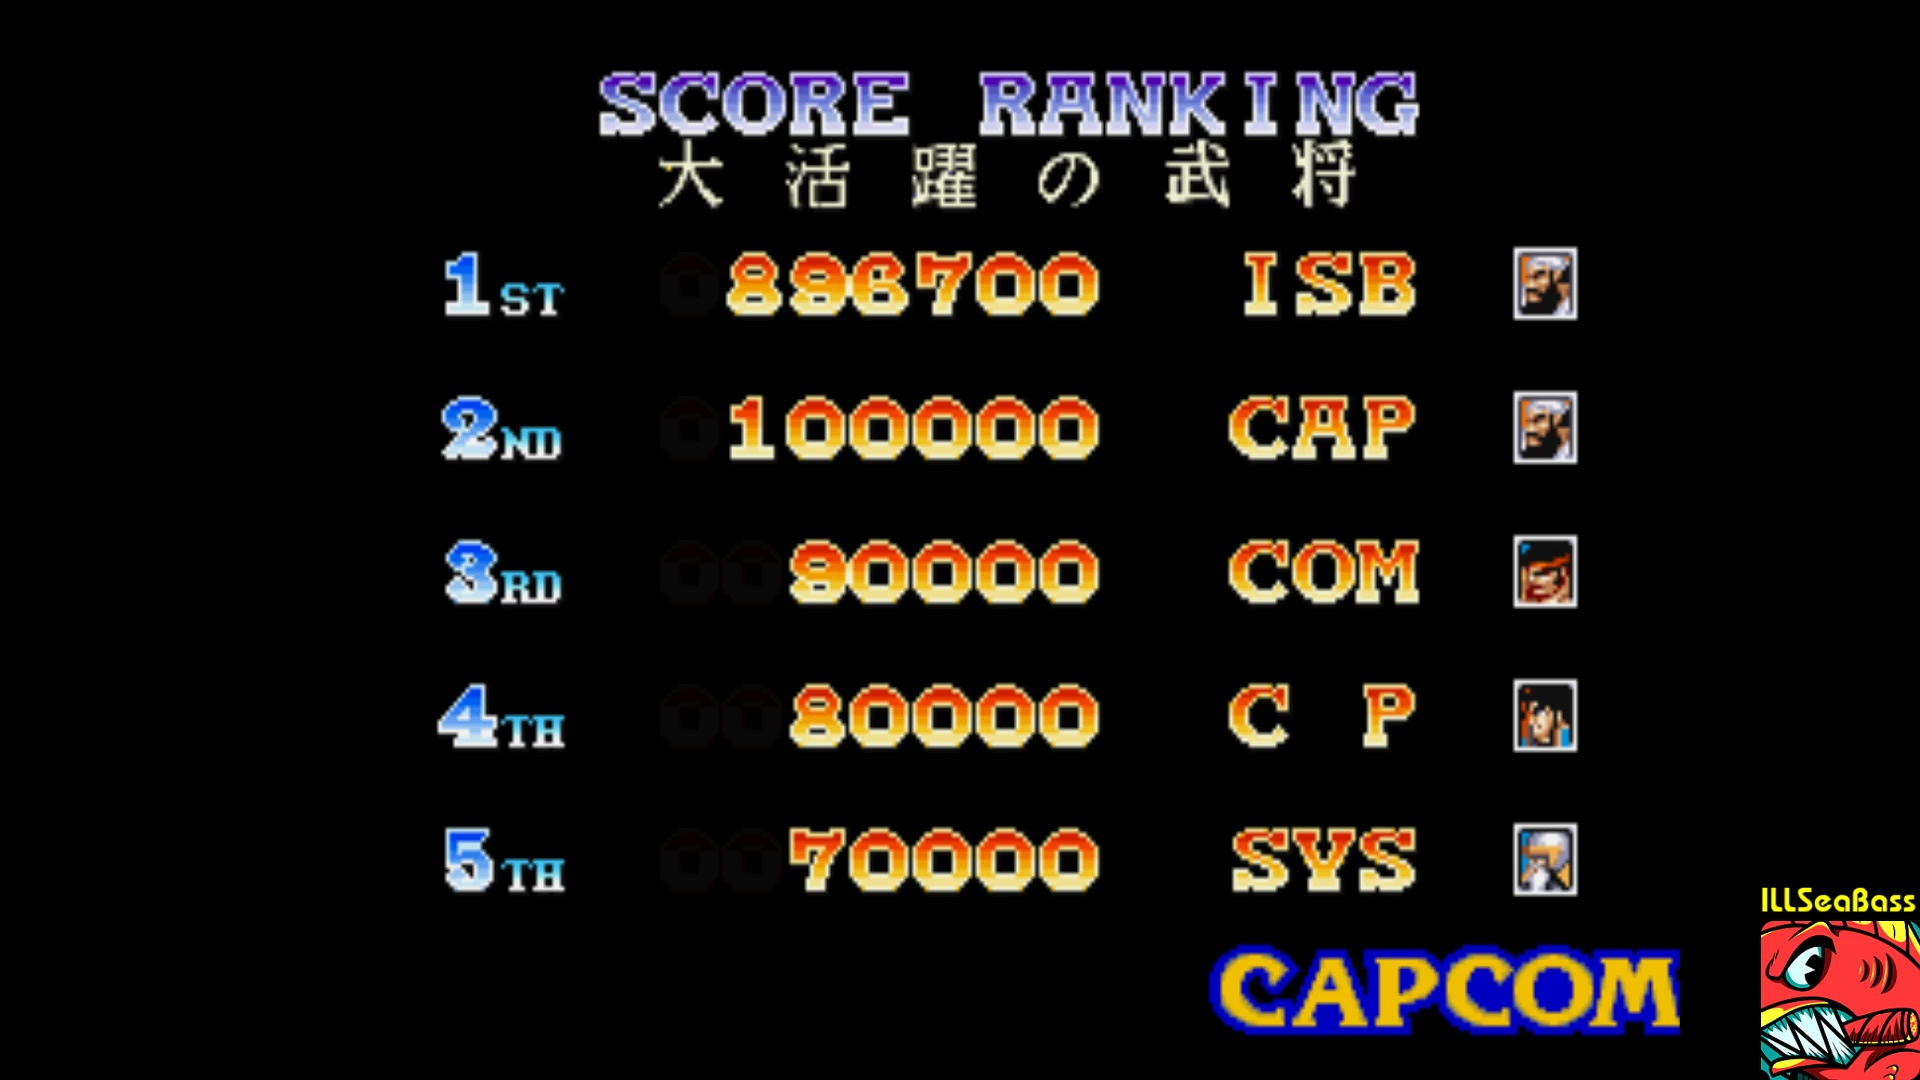 ILLSeaBass: Warriors Of Fate [Hard] (Playstation 1 Emulated) 896,700 points on 2017-11-17 00:30:33